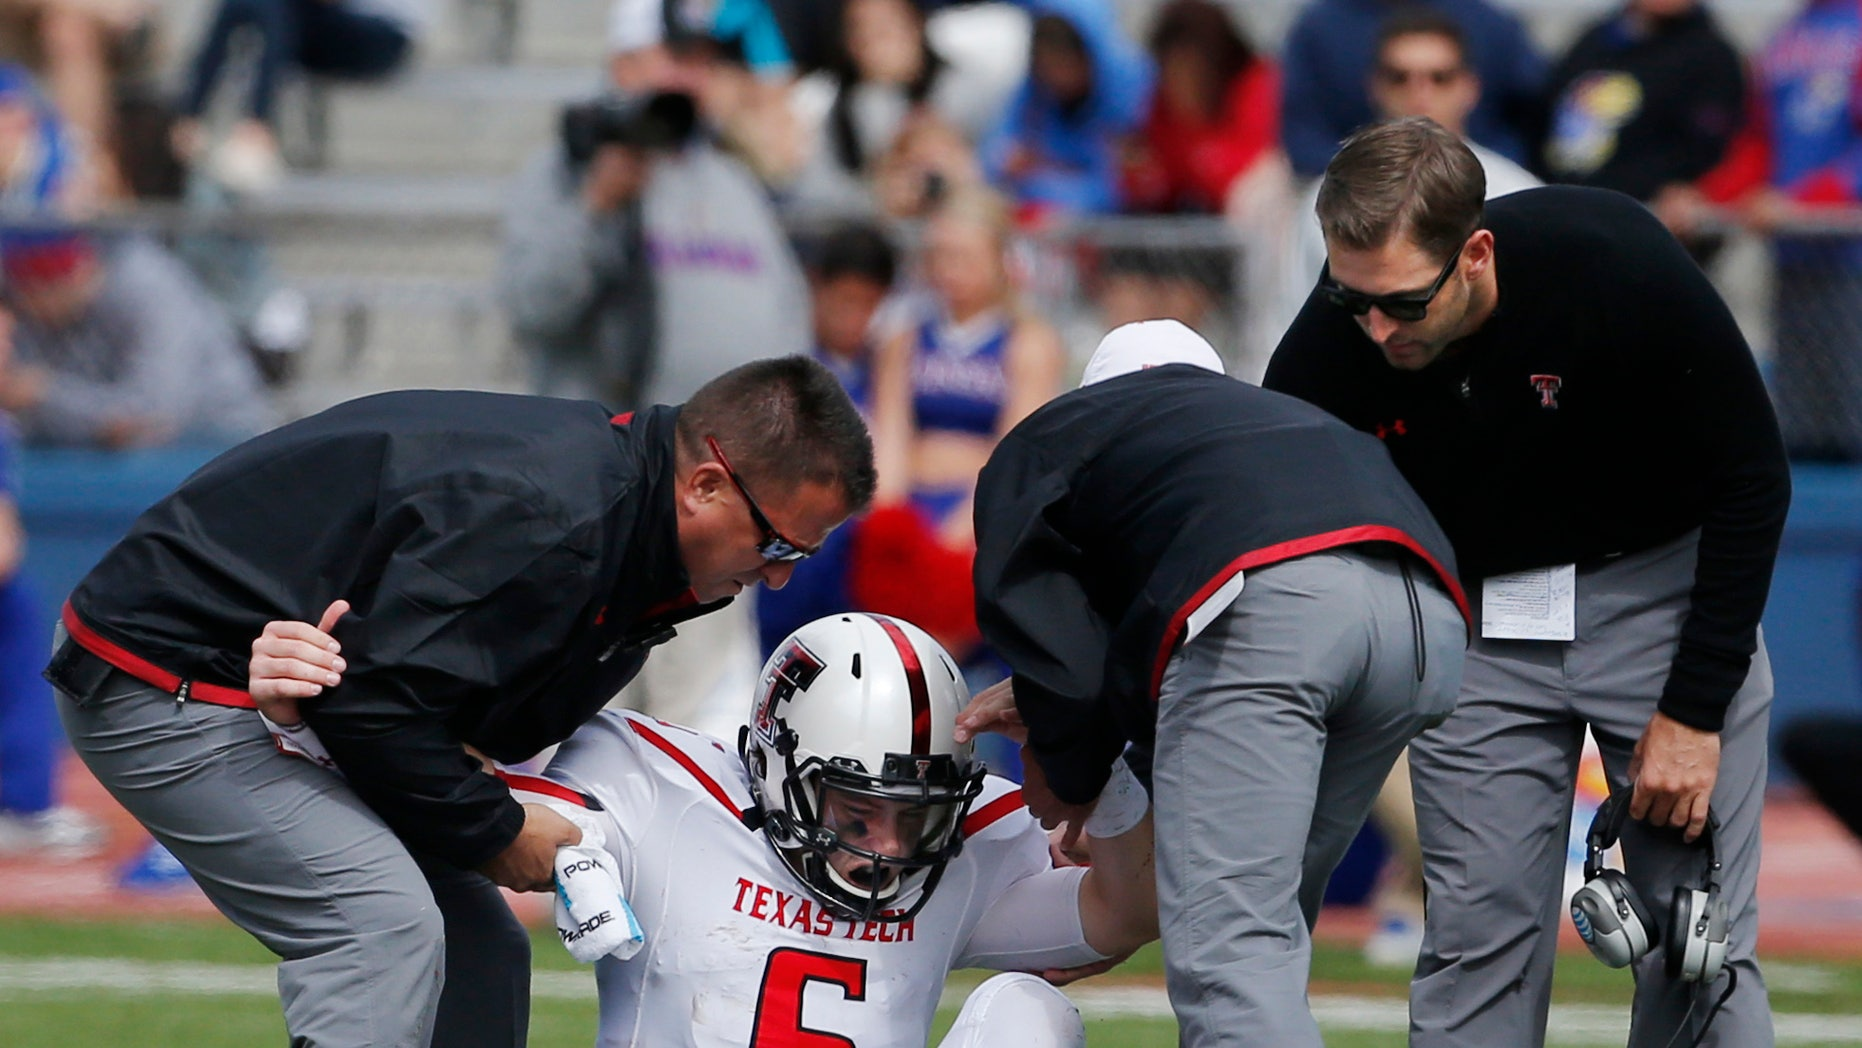 Texas Tech quarterback Baker Mayfield (6) is helped from the field by trainers and coach Kliff Kingsbury, right, during the second half of an NCAA college football game against Kansas in Lawrence, Kan., Saturday, Oct. 5, 2013. (AP Photo/Orlin Wagner)